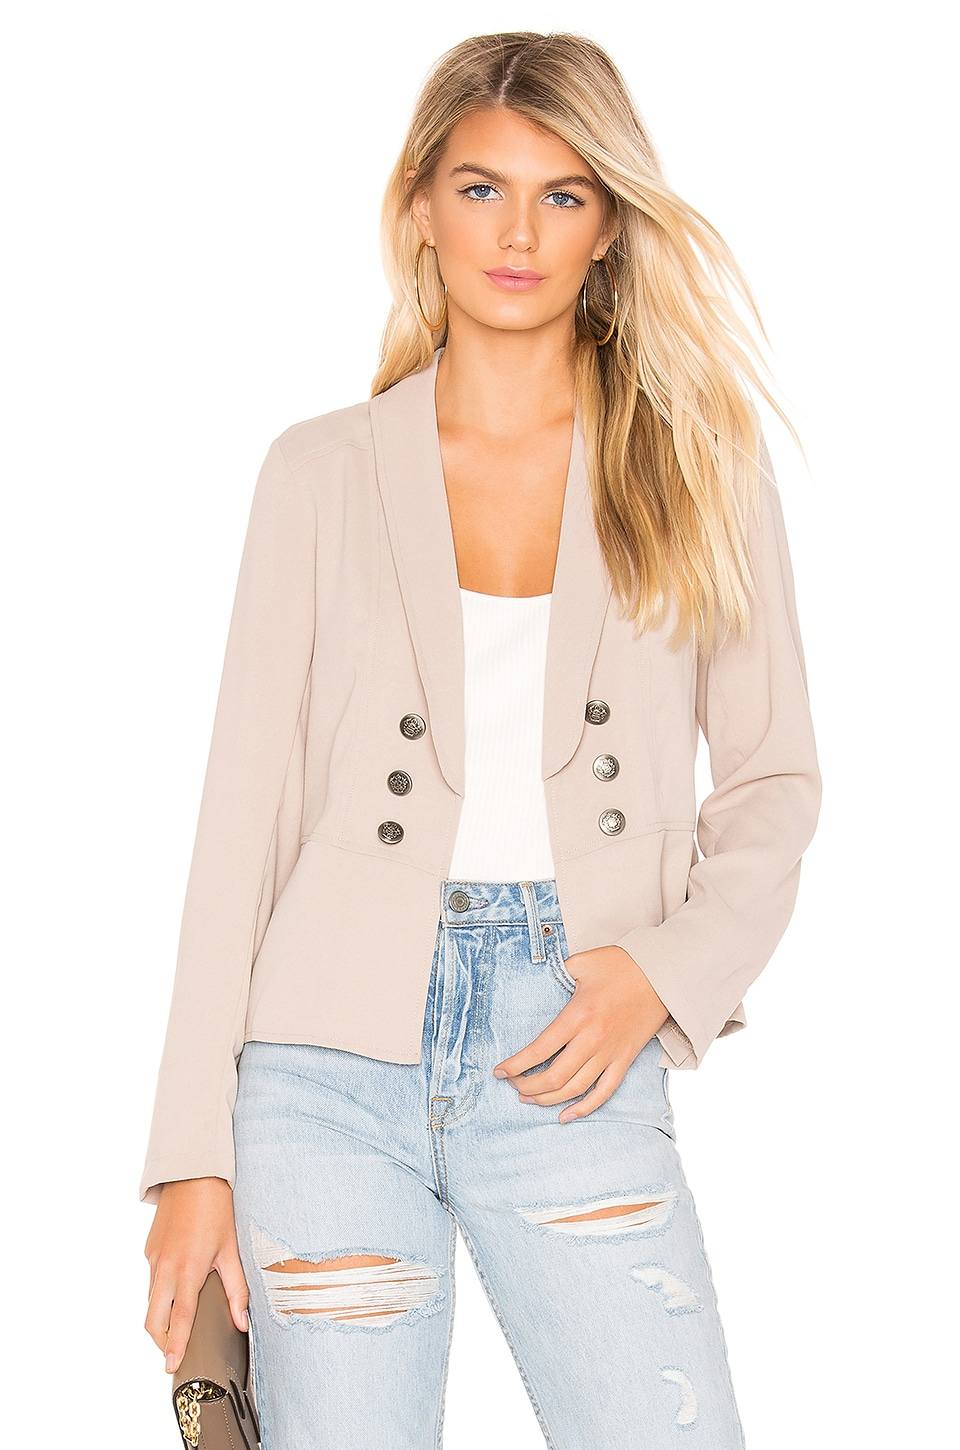 BB Dakota JACK by BB Dakota Take The Reins Blazer in Medium Khaki